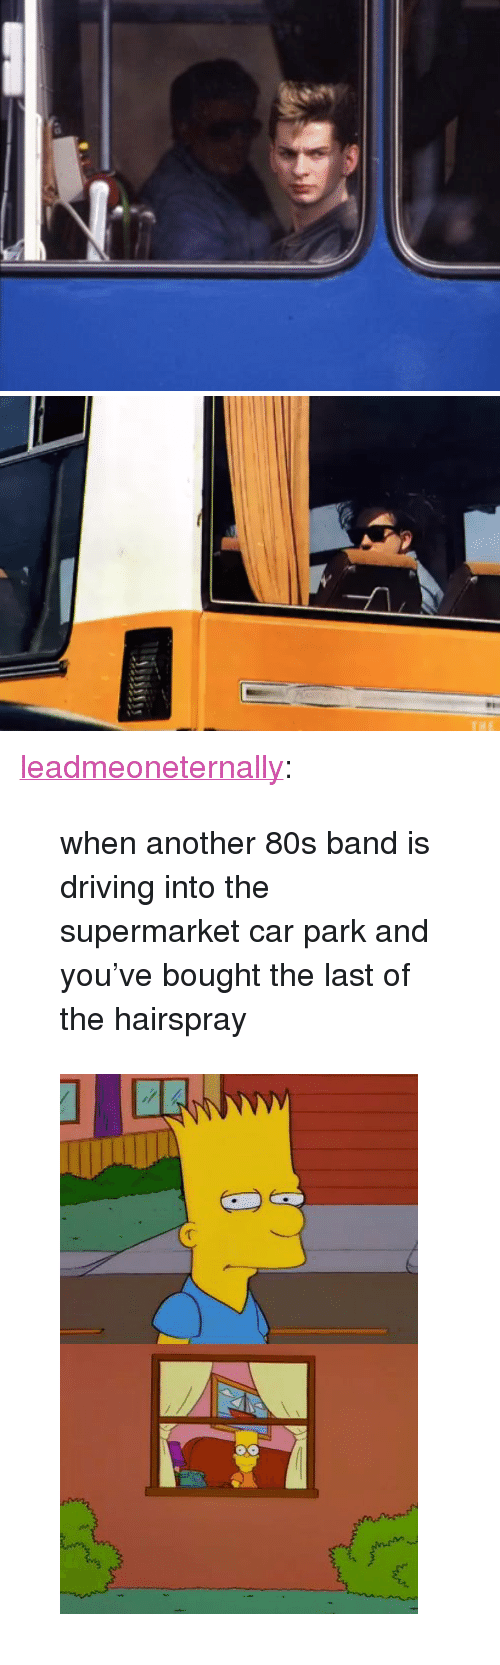 """hairspray: <p><a href=""""http://leadmeoneternally.tumblr.com/post/163501705947/when-another-80s-band-is-driving-into-the"""" class=""""tumblr_blog"""">leadmeoneternally</a>:</p> <blockquote><p>when another 80s band is driving into the supermarket car park and you've bought the last of the hairspray</p></blockquote> <figure class=""""tmblr-full"""" data-orig-height=""""540"""" data-orig-width=""""358""""><img src=""""https://78.media.tumblr.com/547f6d09b9a2b4a3666fcb4cb4251a67/tumblr_inline_otu0q2BWBs1sj7sh5_540.jpg"""" data-orig-height=""""540"""" data-orig-width=""""358""""/></figure>"""